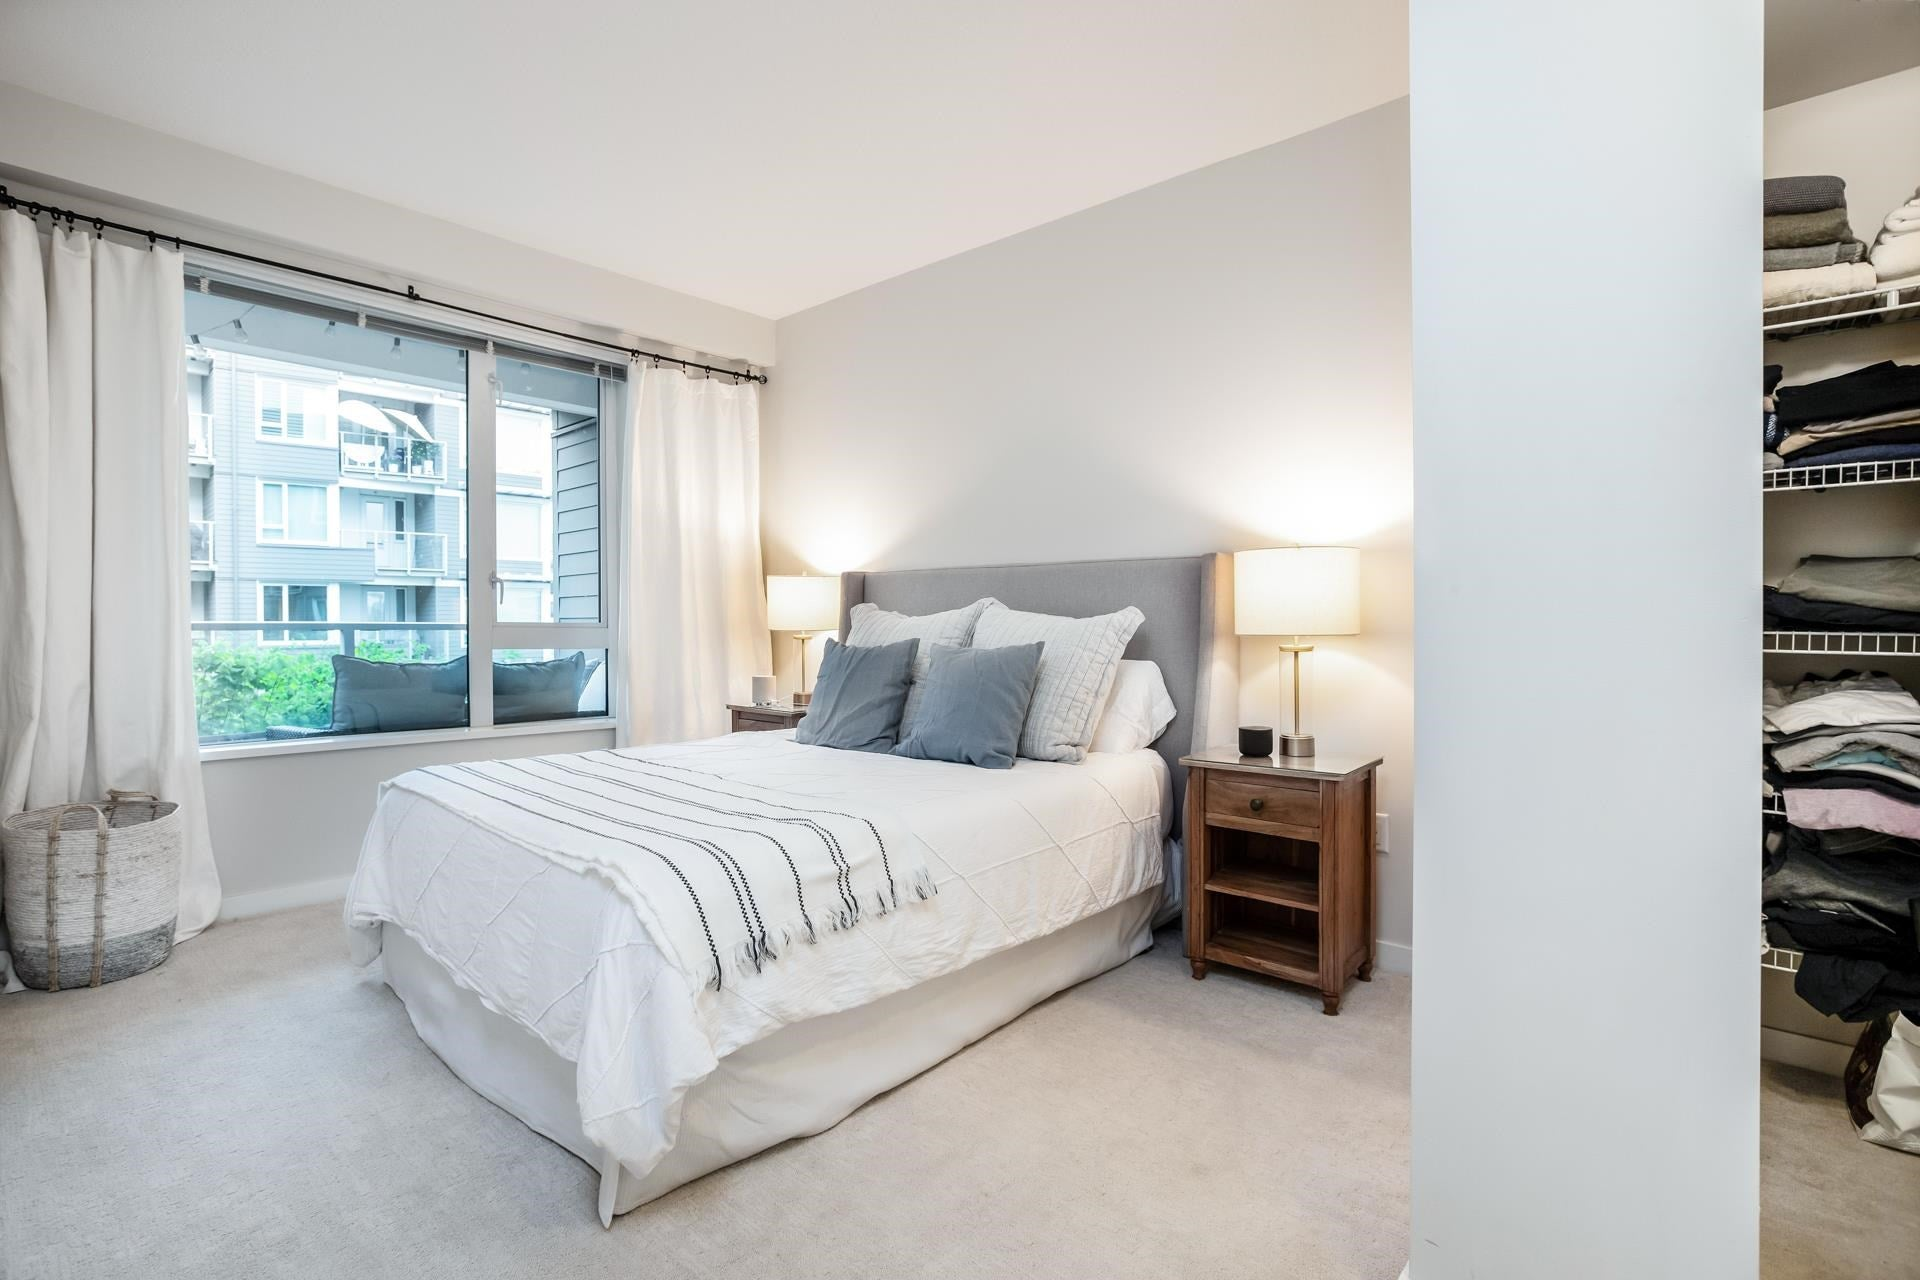 207 255 W 1ST STREET - Lower Lonsdale Apartment/Condo for sale, 2 Bedrooms (R2603882) - #15